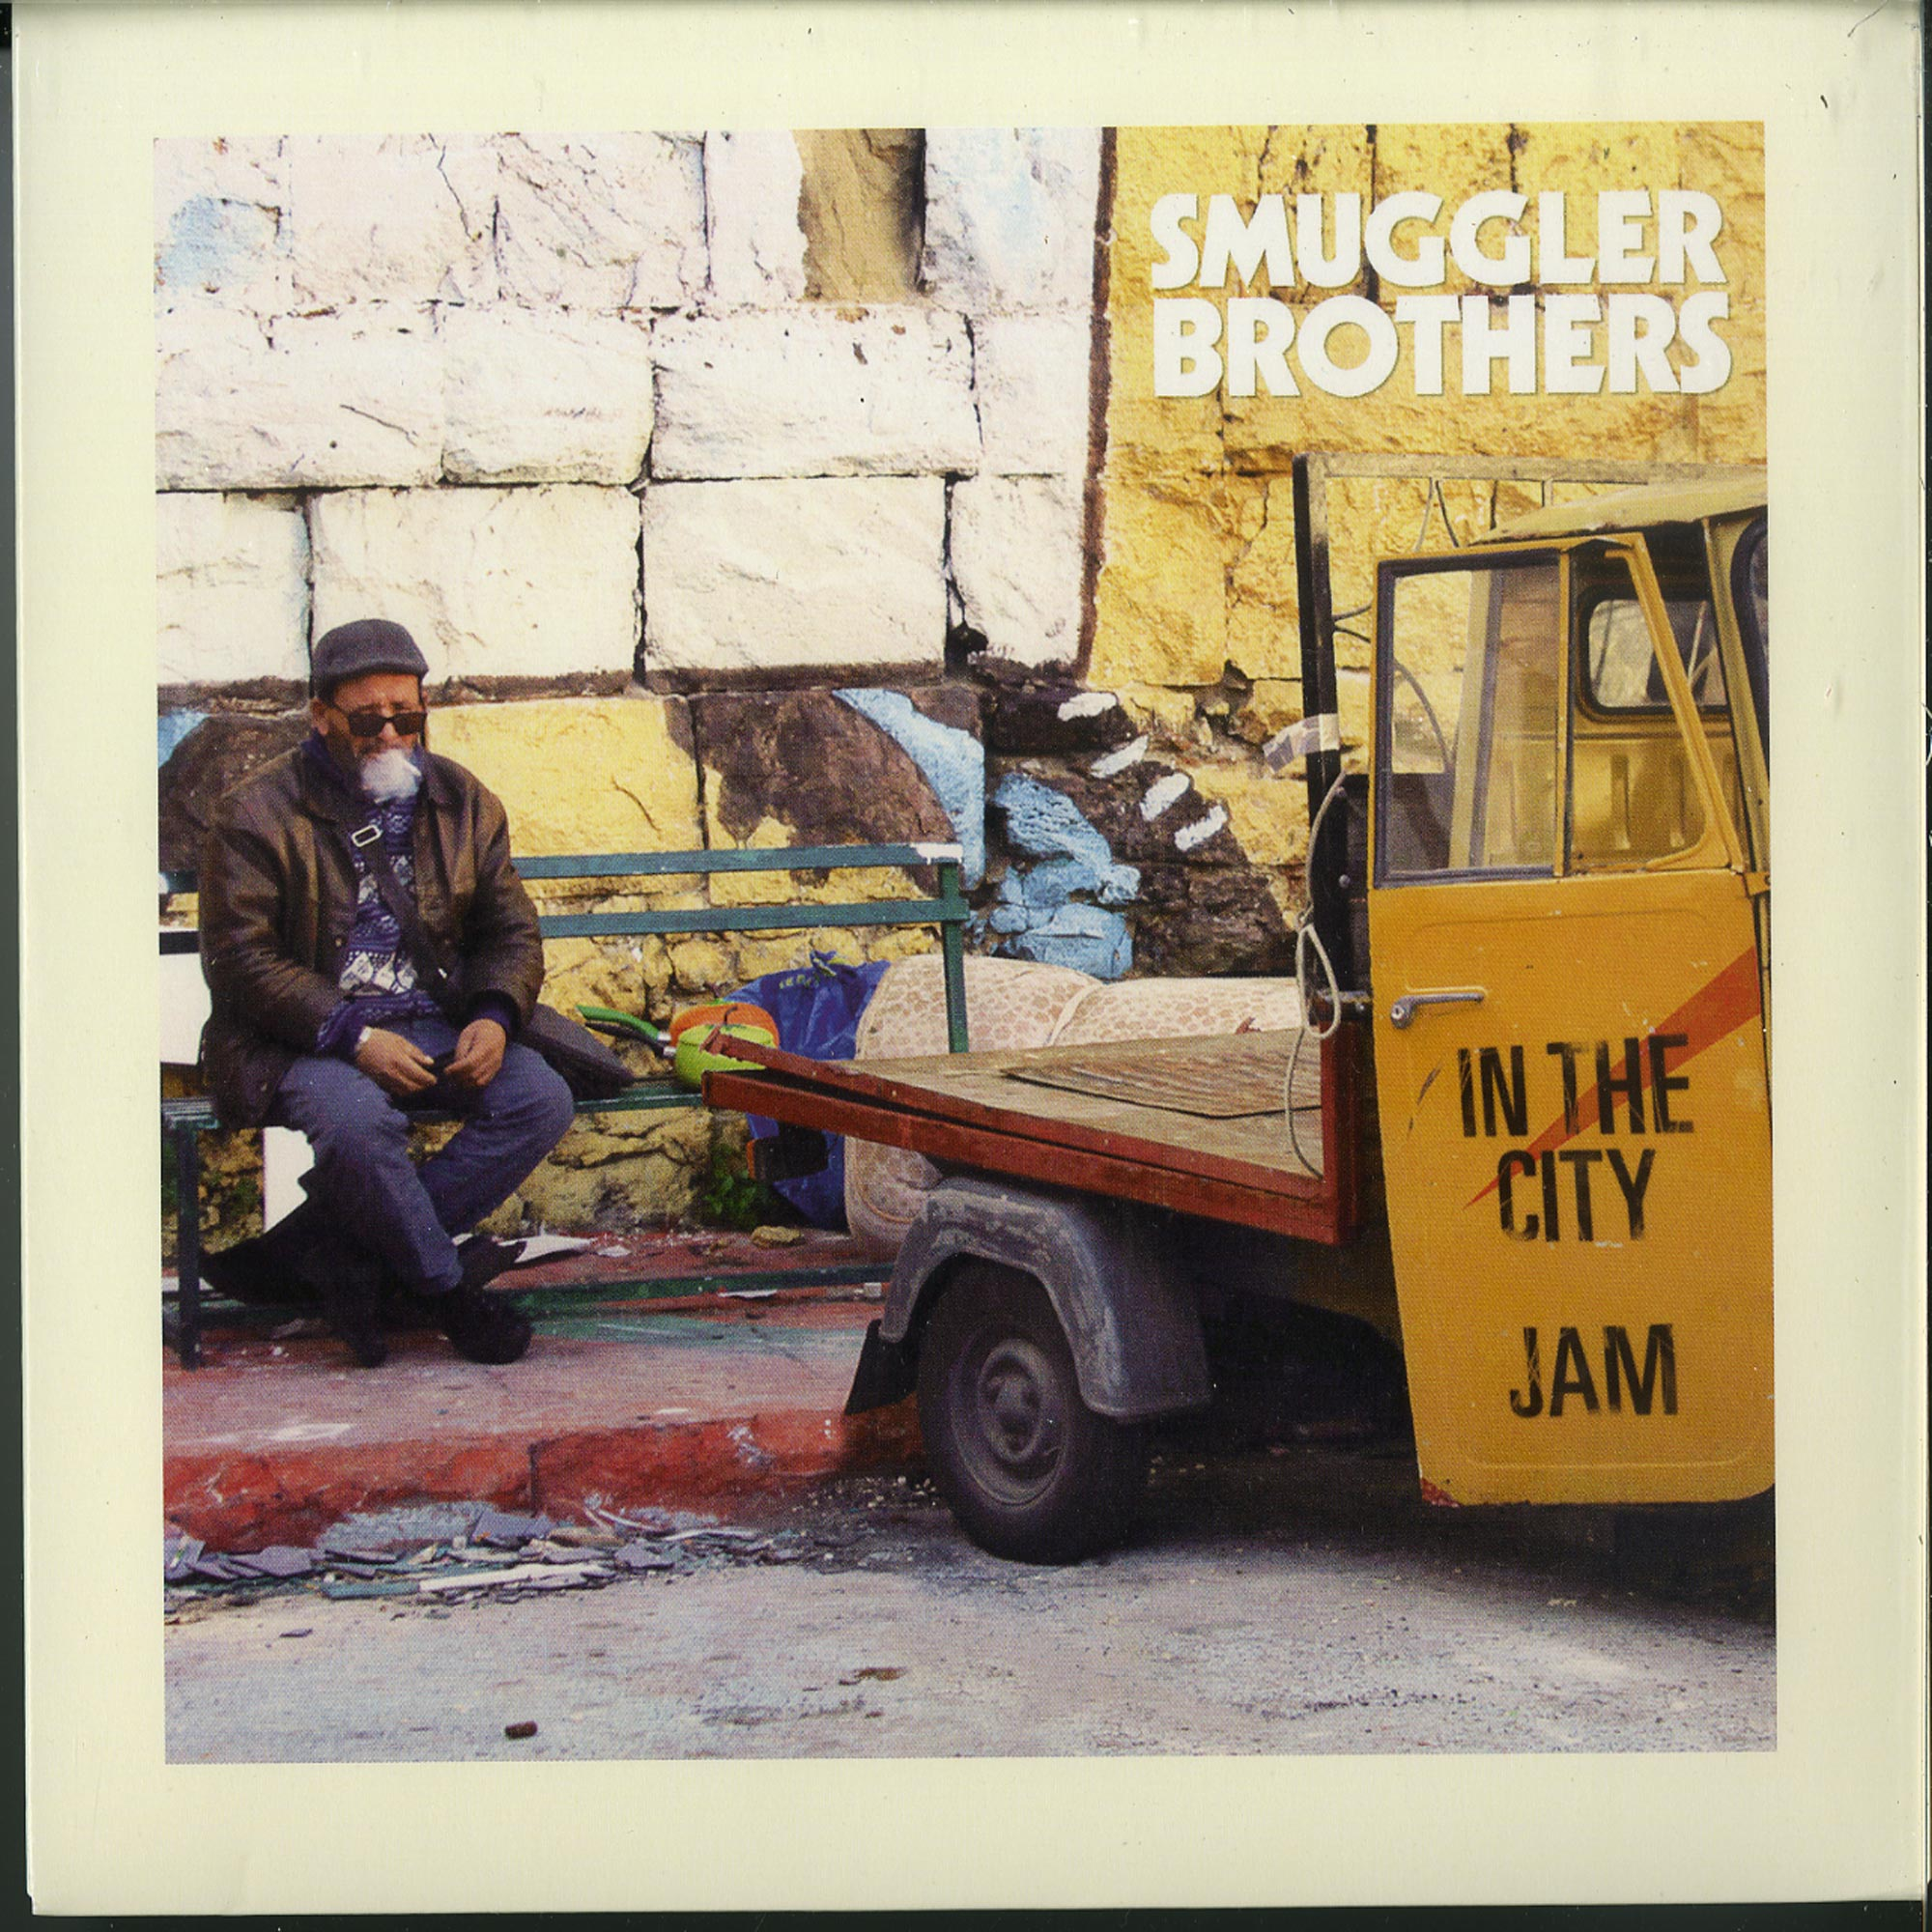 Smuggler Brothers - IN THE CITY / JAM